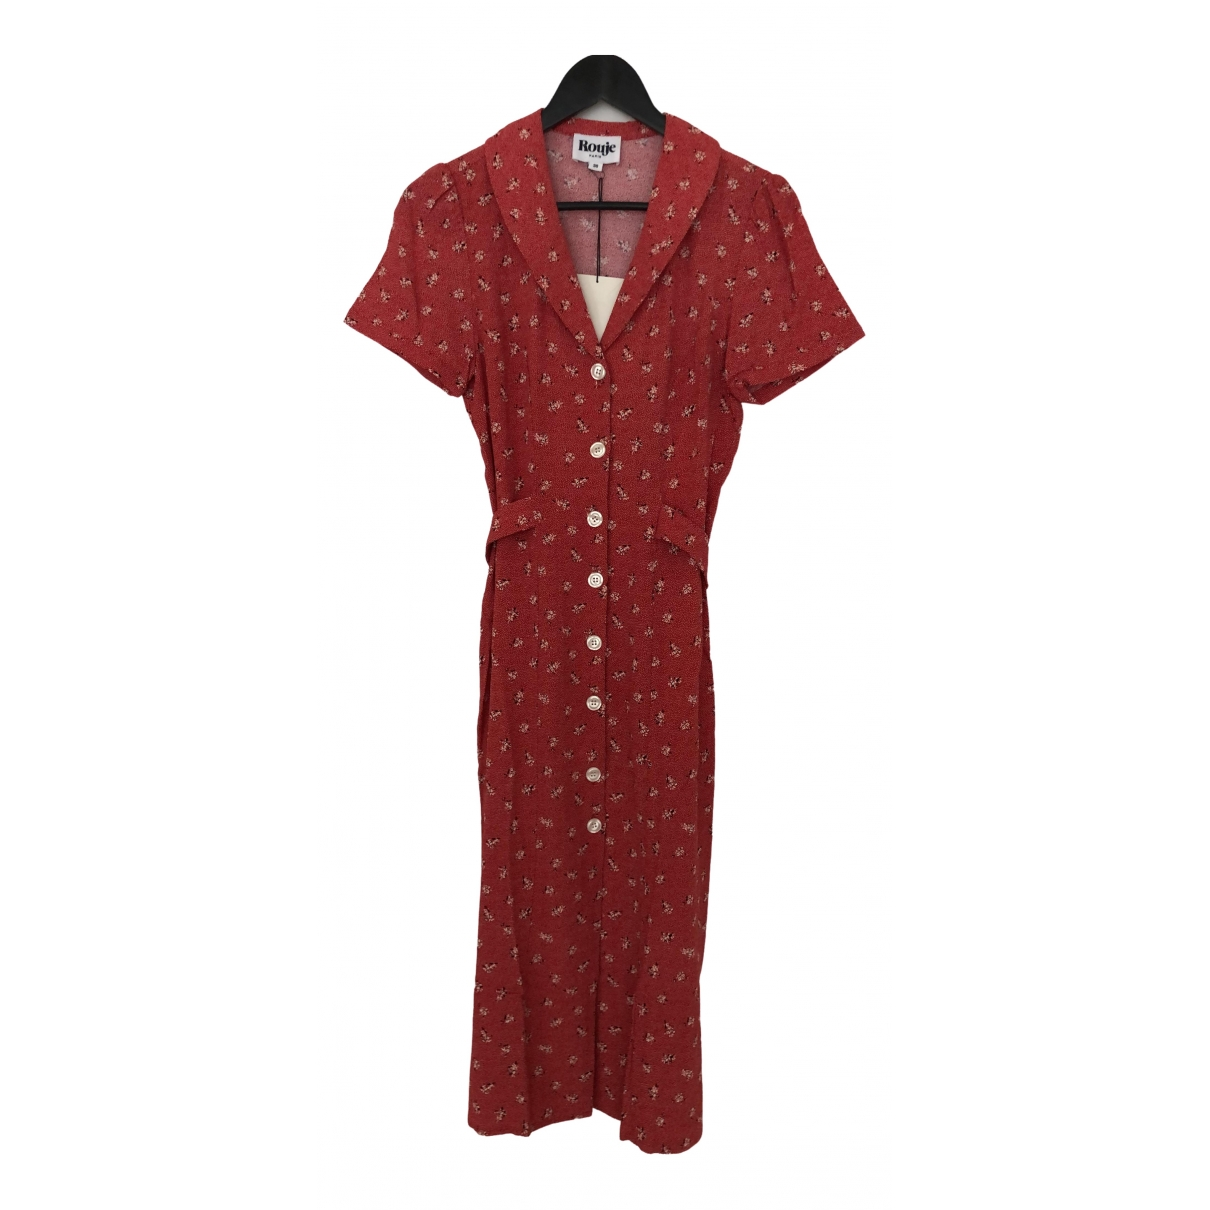 Rouje - Robe Spring Summer 2020 pour femme - rouge